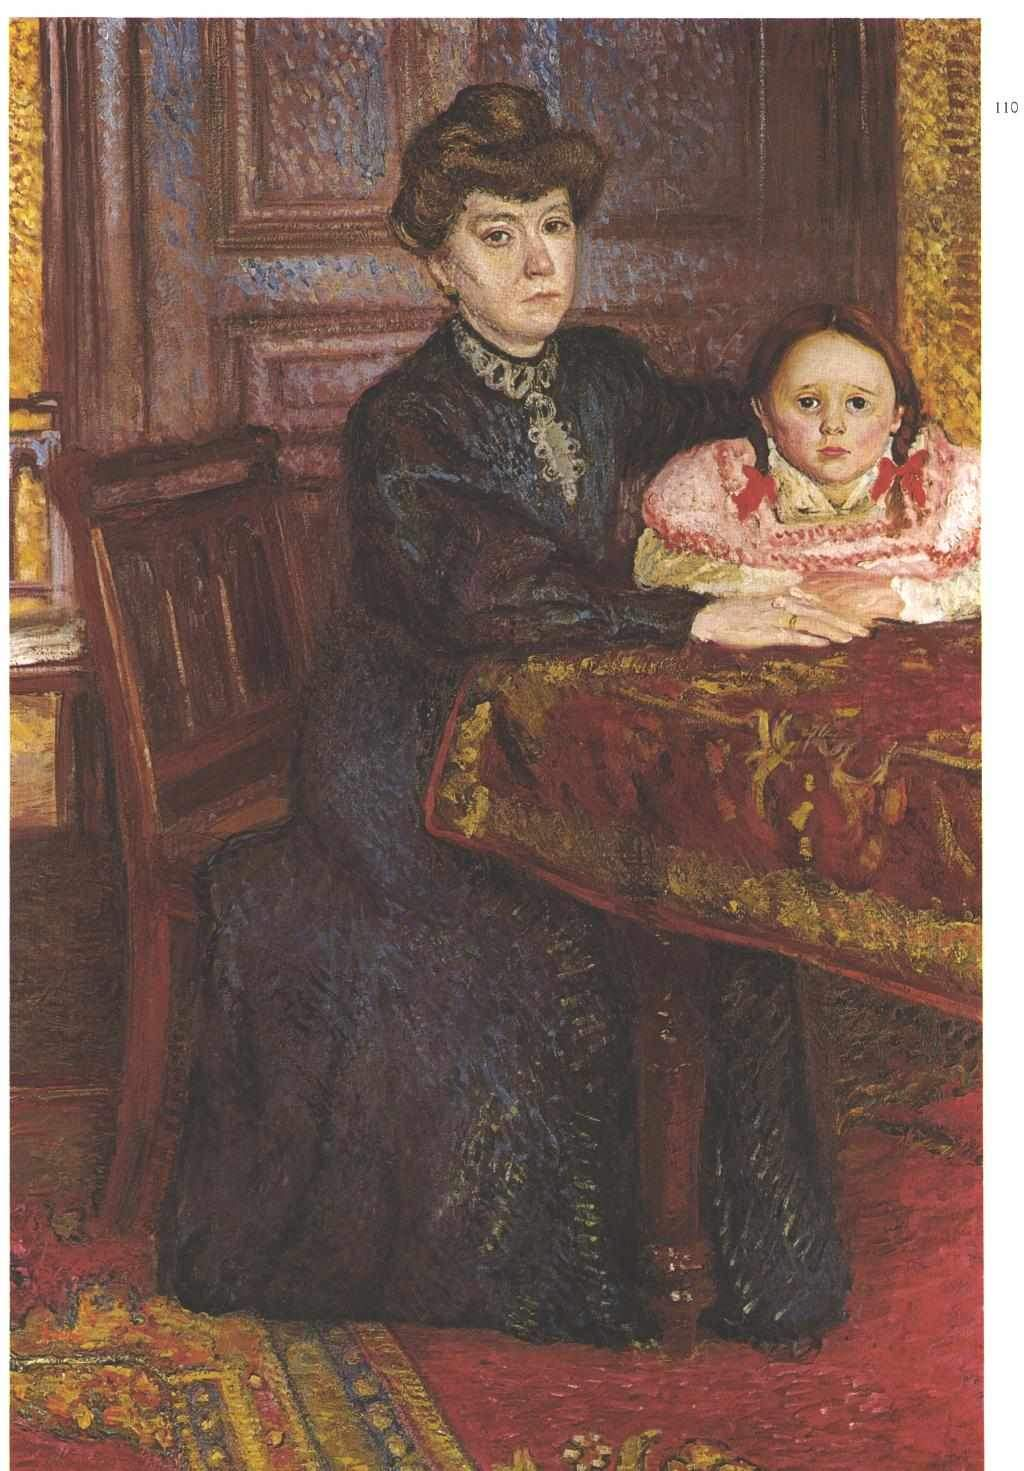 Double portrait of Matilda and Gertrude Schonberg 1906